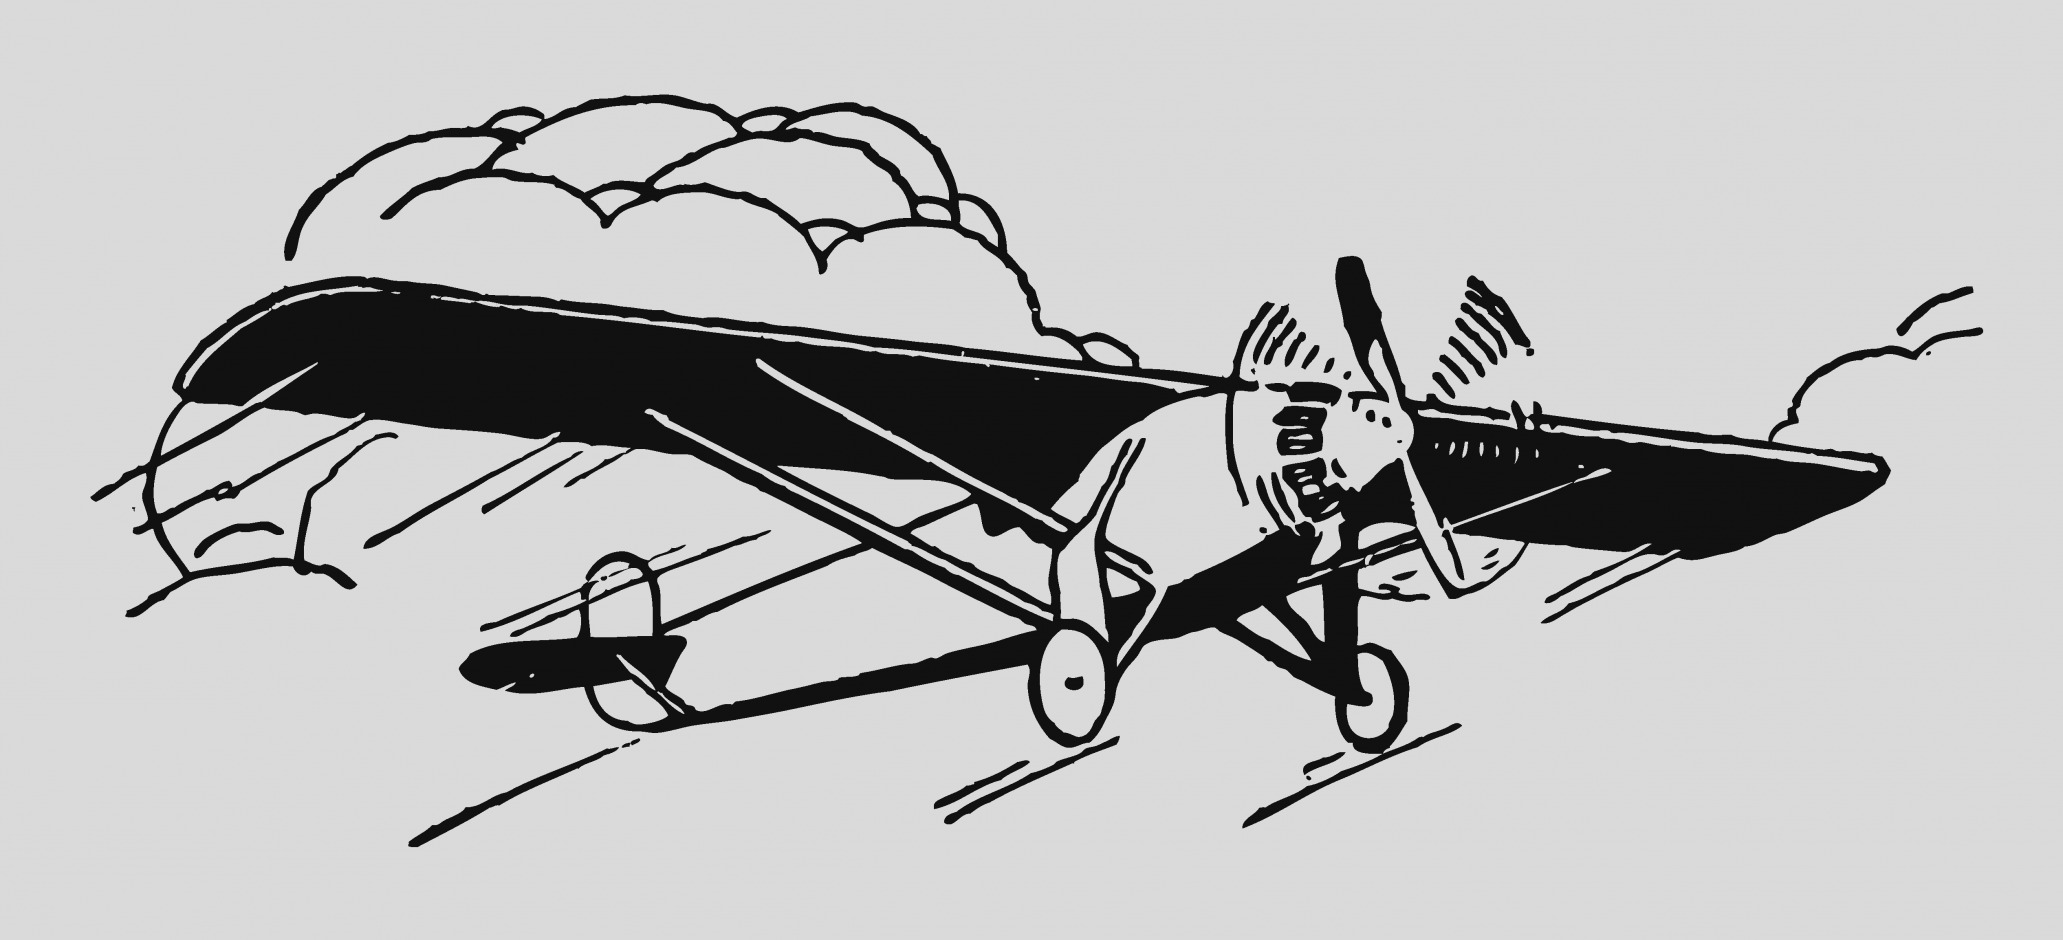 Biplane clipart old fashioned. Collection of plane clip